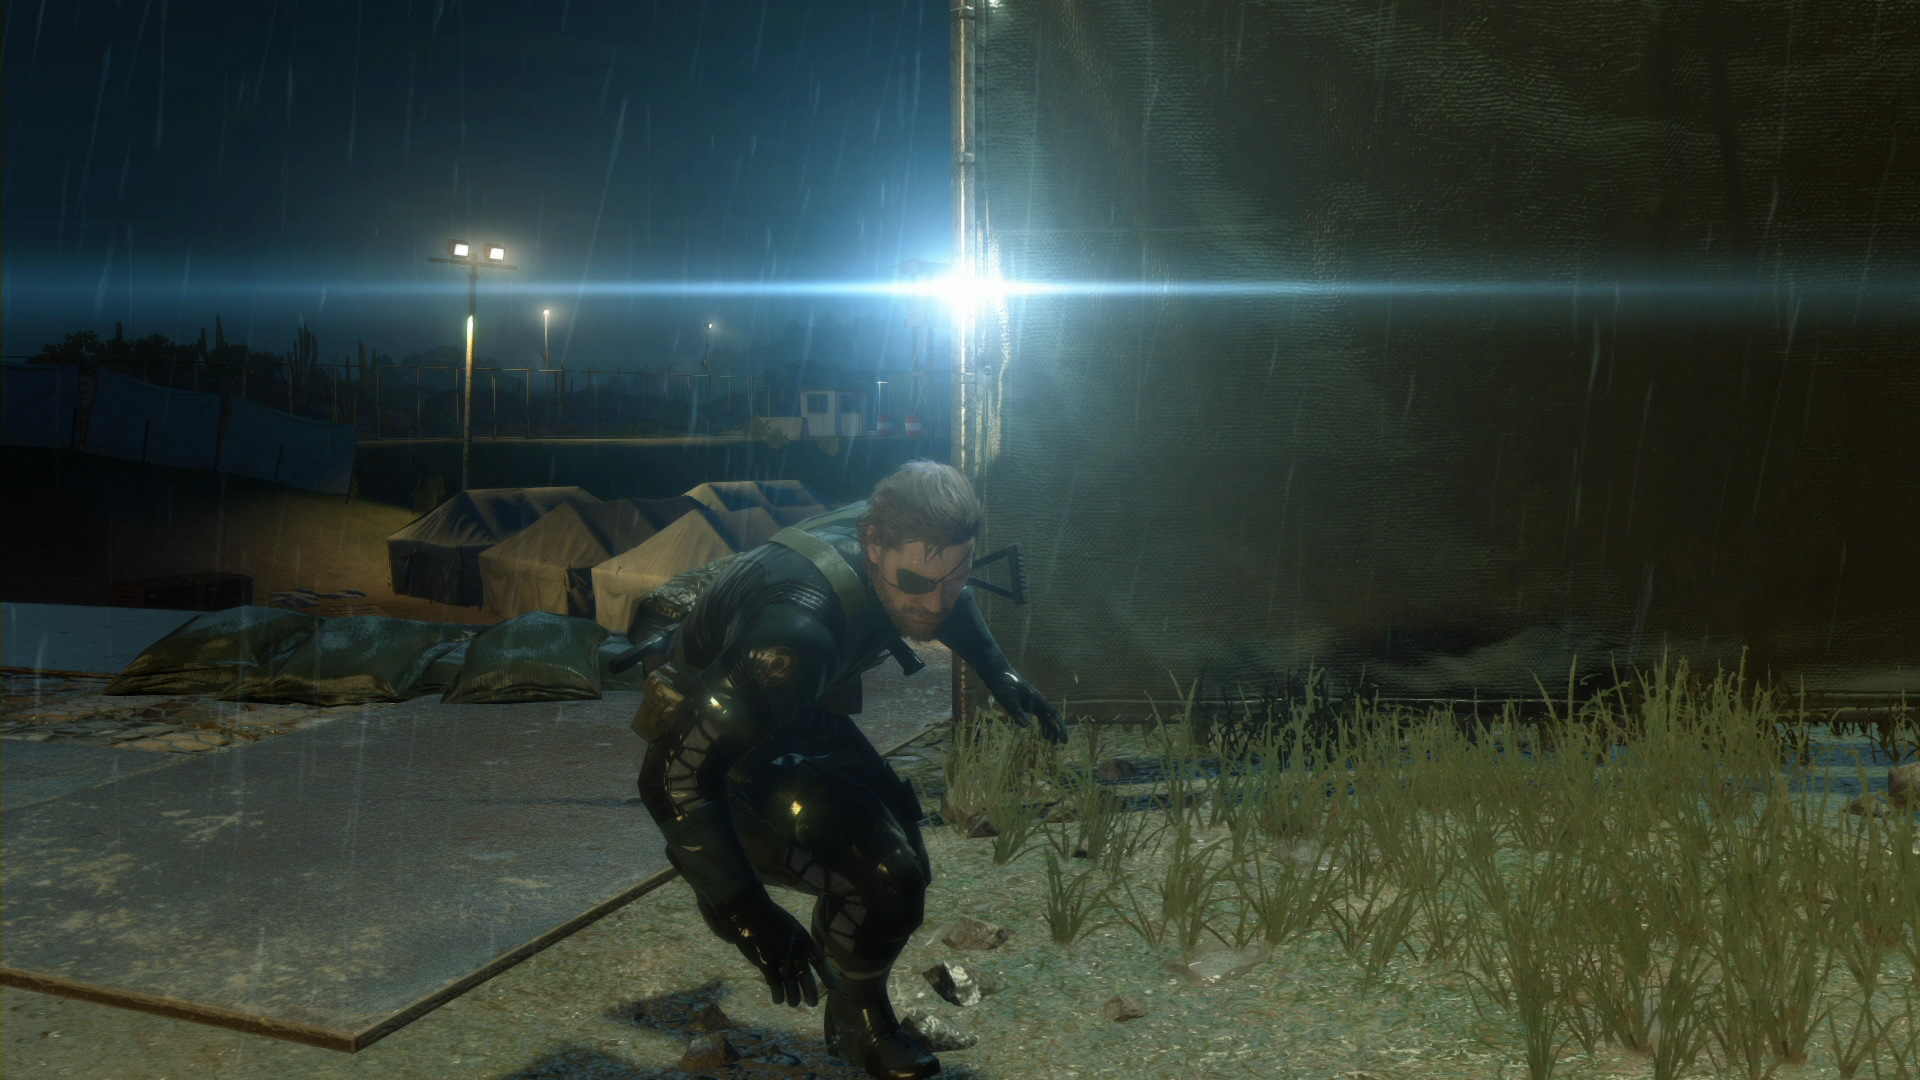 metal-gear-solid-v-ground-zeroes-1080